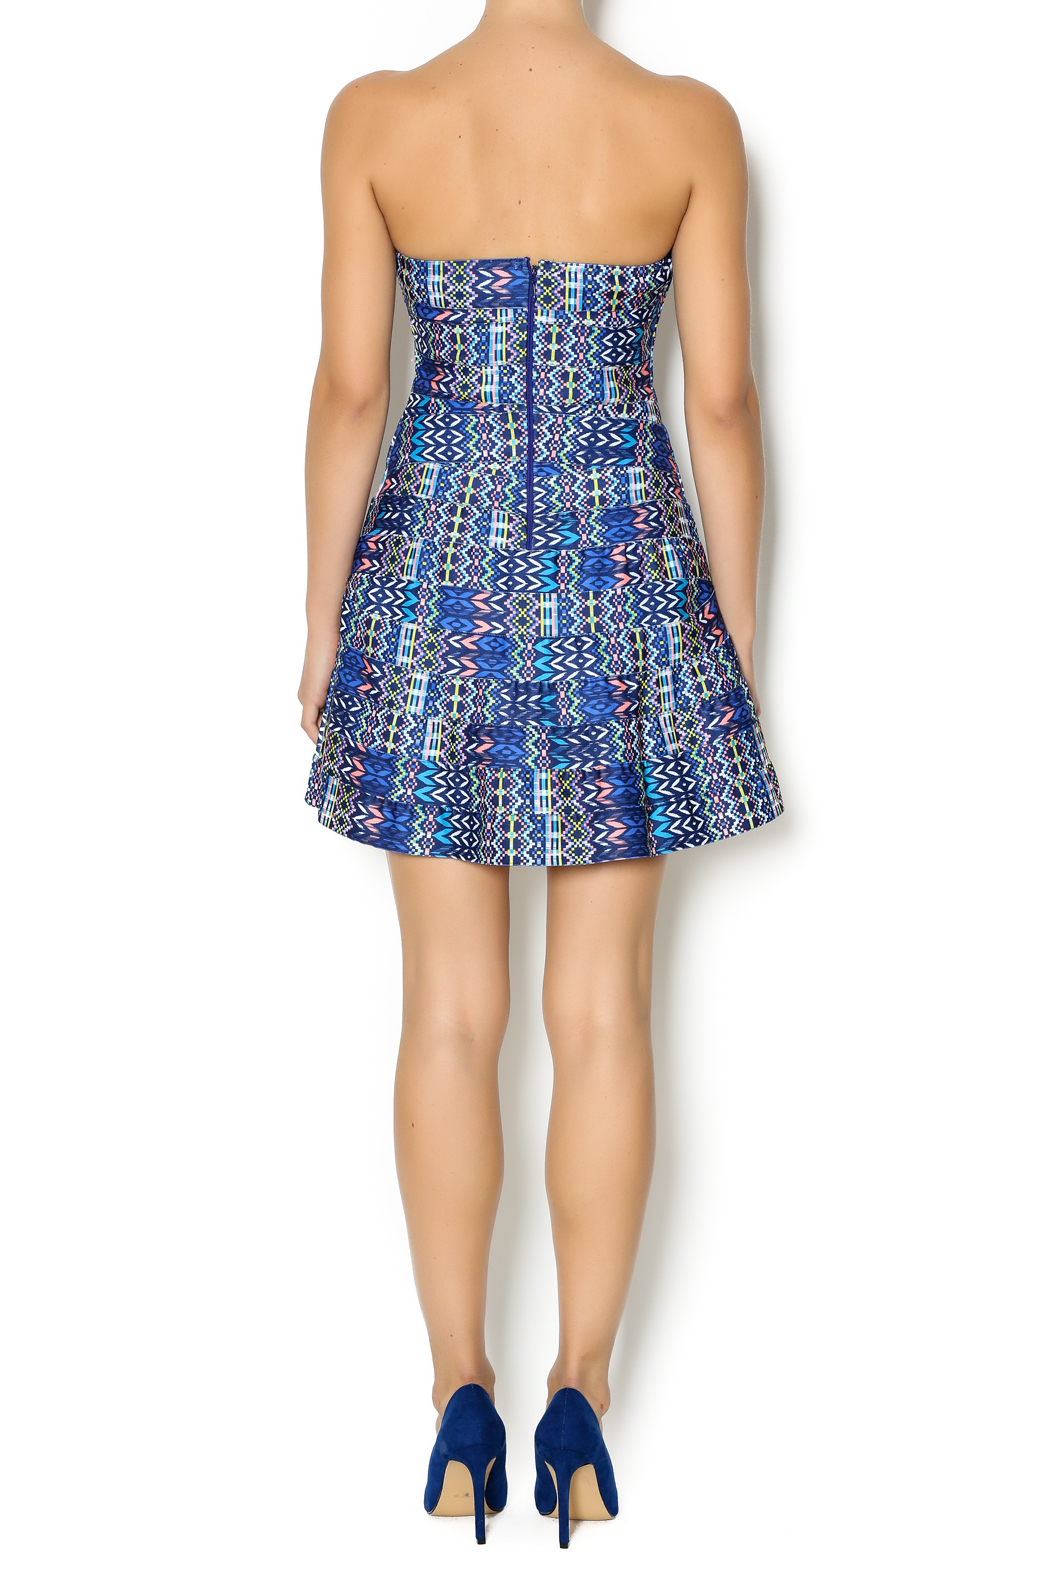 Wow Couture Blue Multi Sweetheart Dress - Side Cropped Image